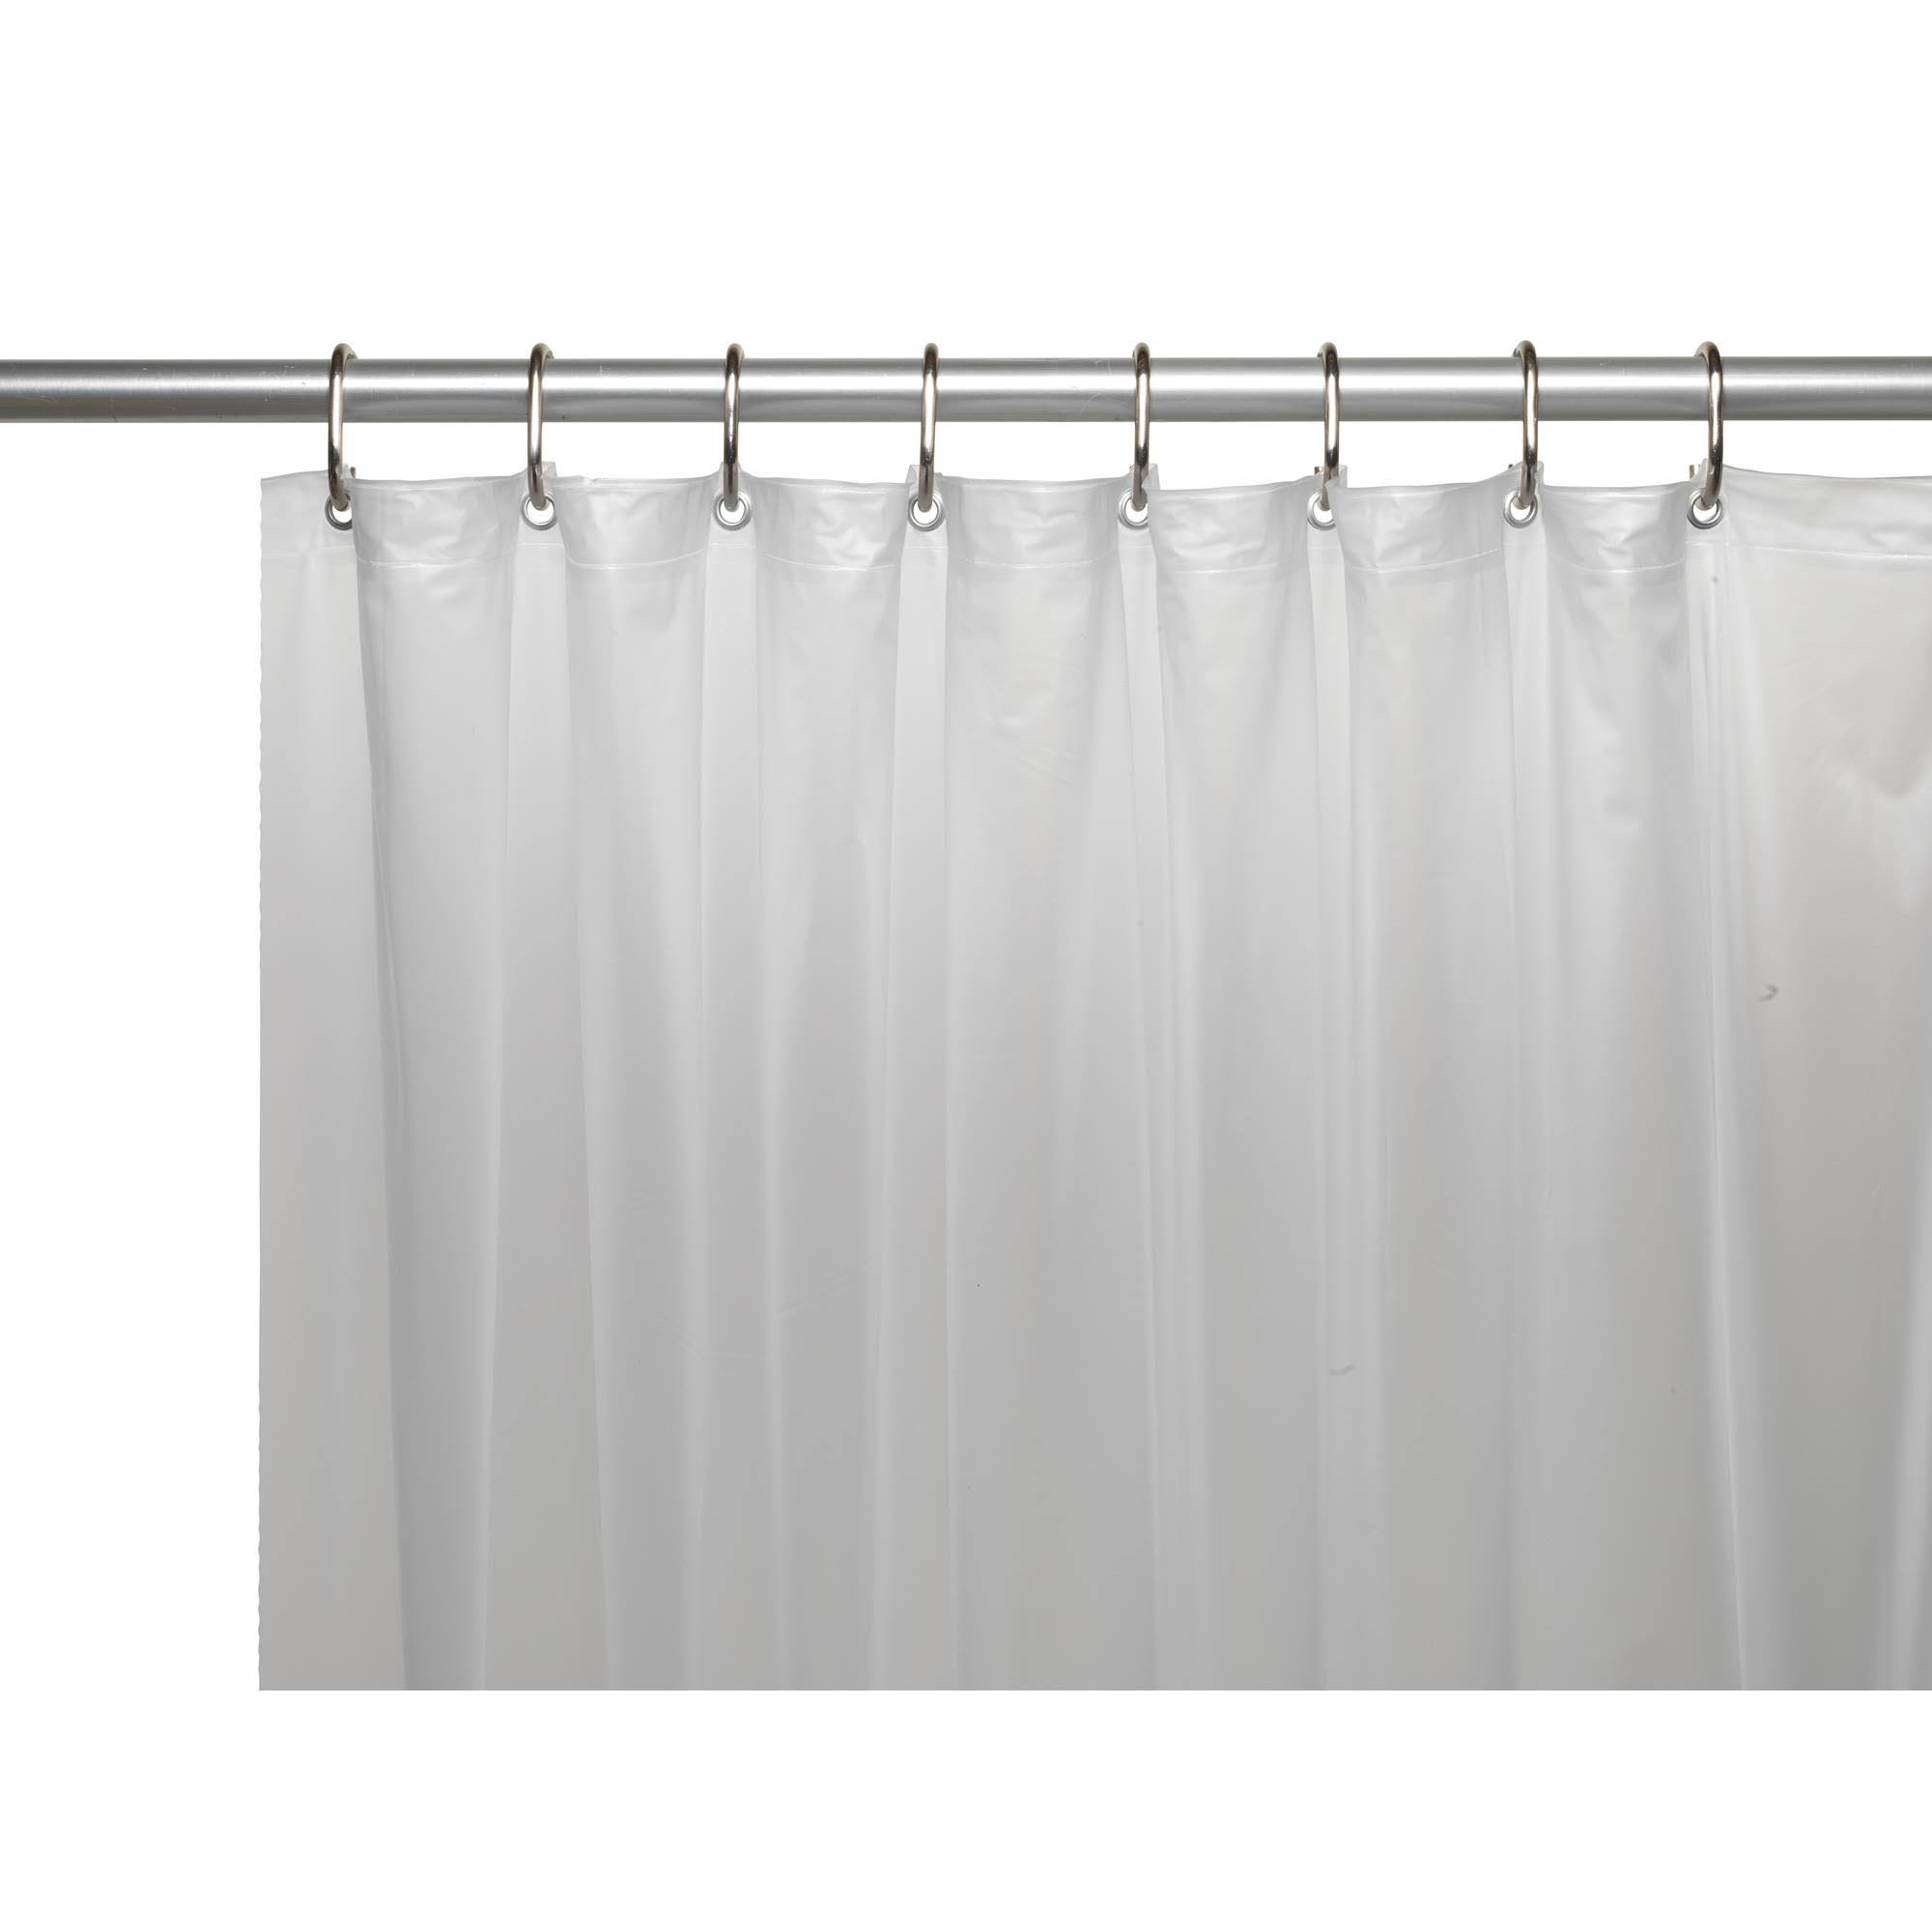 Carnation Home Fashions 3-Gauge Vinyl Shower Curtain Liner with Metal Grommets, Frosty Clear